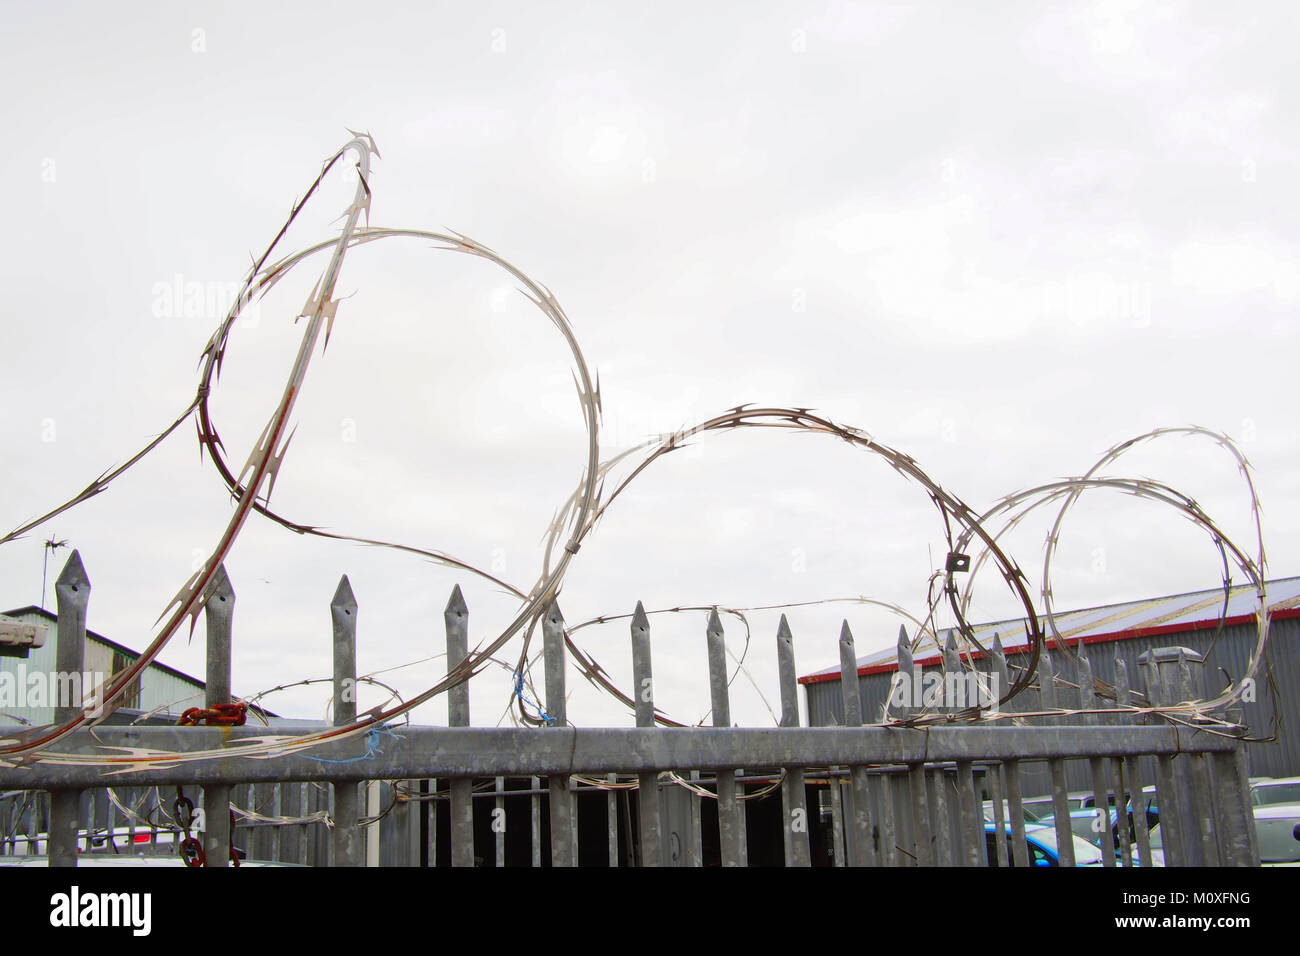 Barbed Wire Fence And Cloudy Sky Stock Photos & Barbed Wire Fence ...